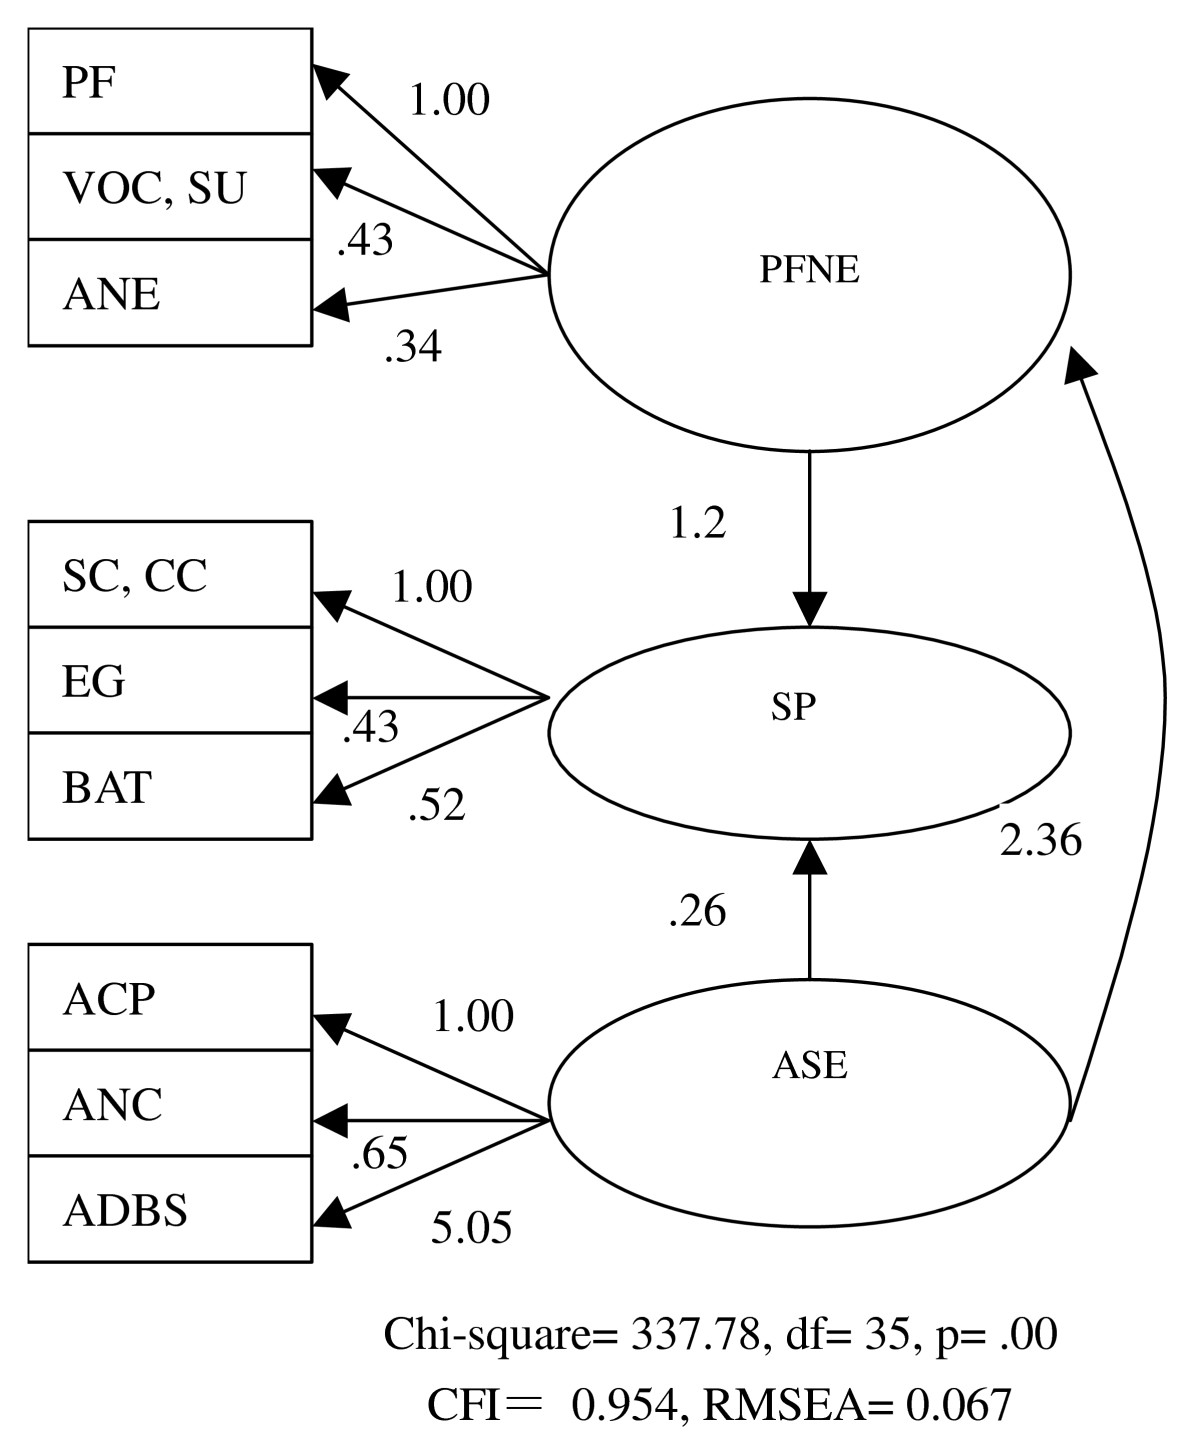 http://static-content.springer.com/image/art%3A10.1186%2F1749-8546-4-8/MediaObjects/13020_2008_Article_42_Fig3_HTML.jpg